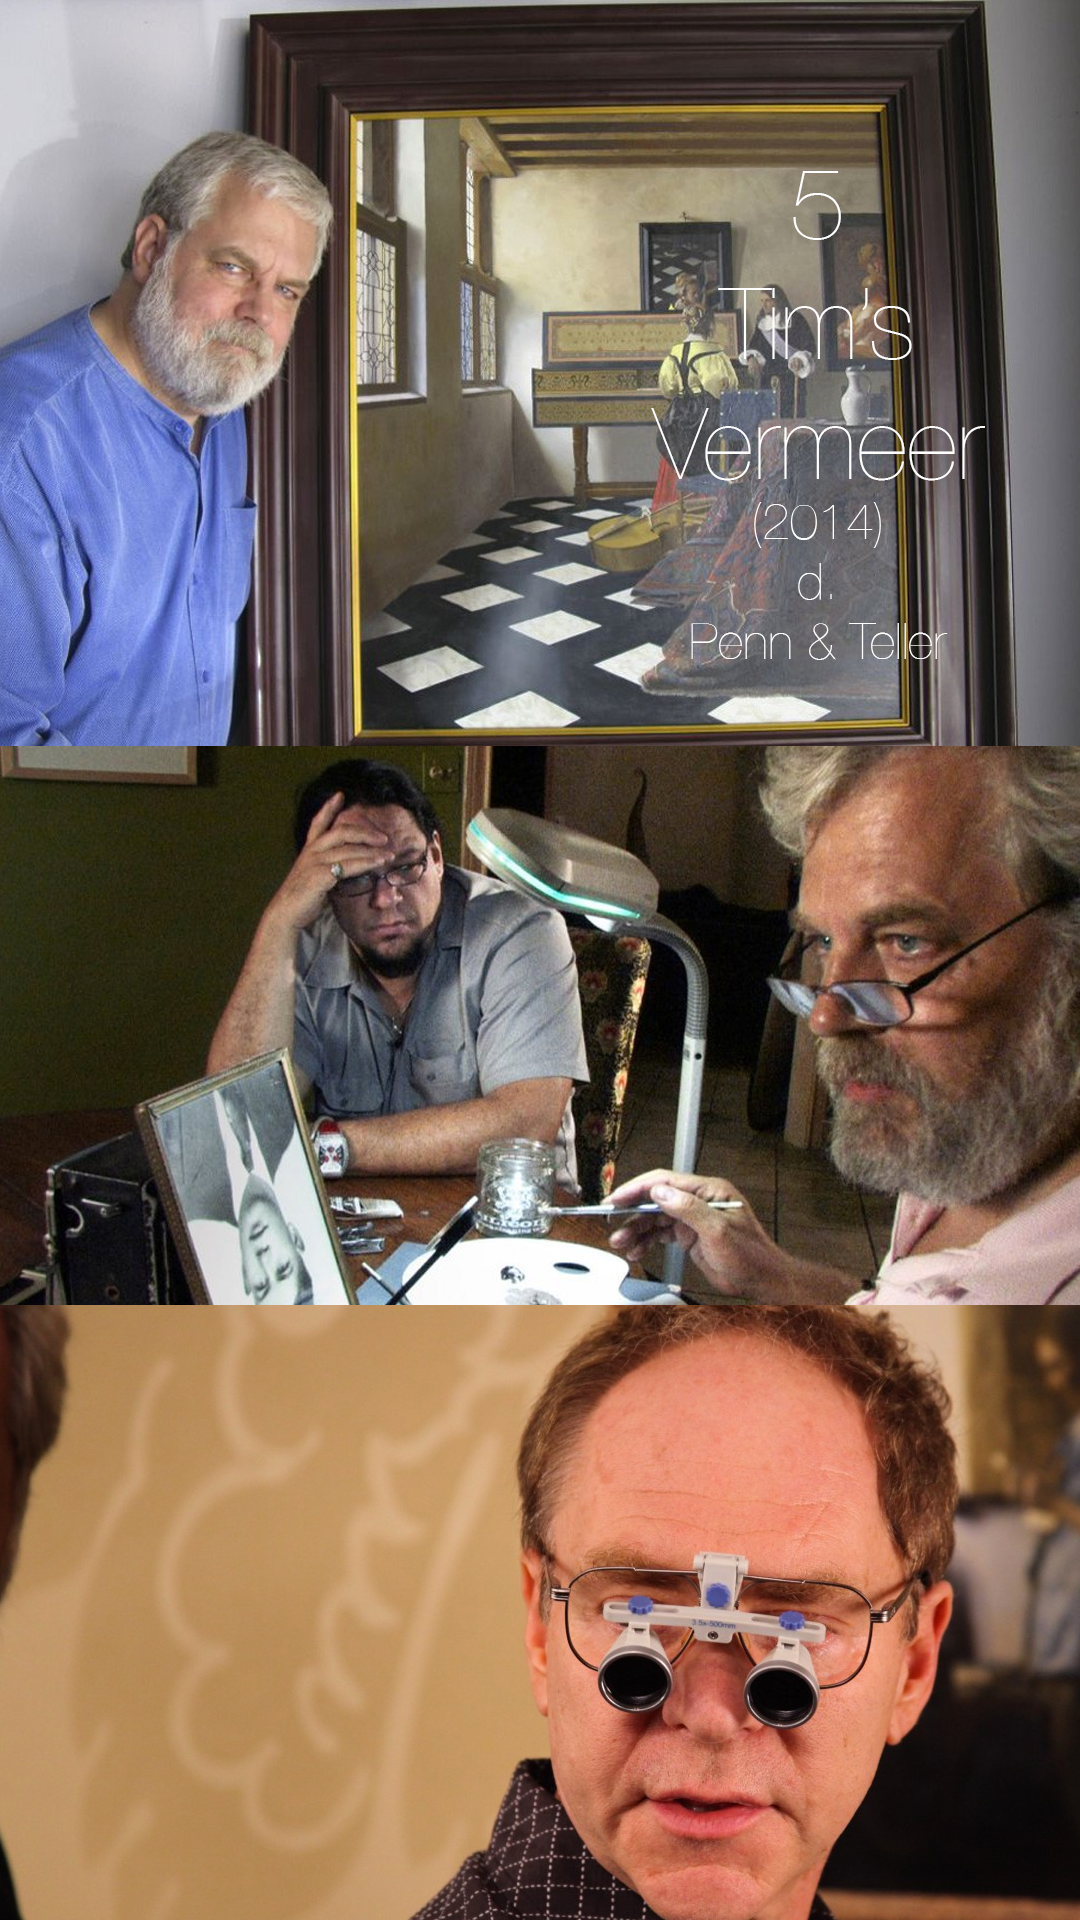 You love Penn & Teller, I love Penn & Teller, everyone loves Penn & Teller. But no one knew that Penn & Teller could make a movie as good as TIM'S VERMEER, which investigates a hypothesis that the great painter Vermeer may have been painting using a contraption that allowed him to trace a projection. Like their show FOOL US, Penn & Teller obsessively tear apart a great magic trick.